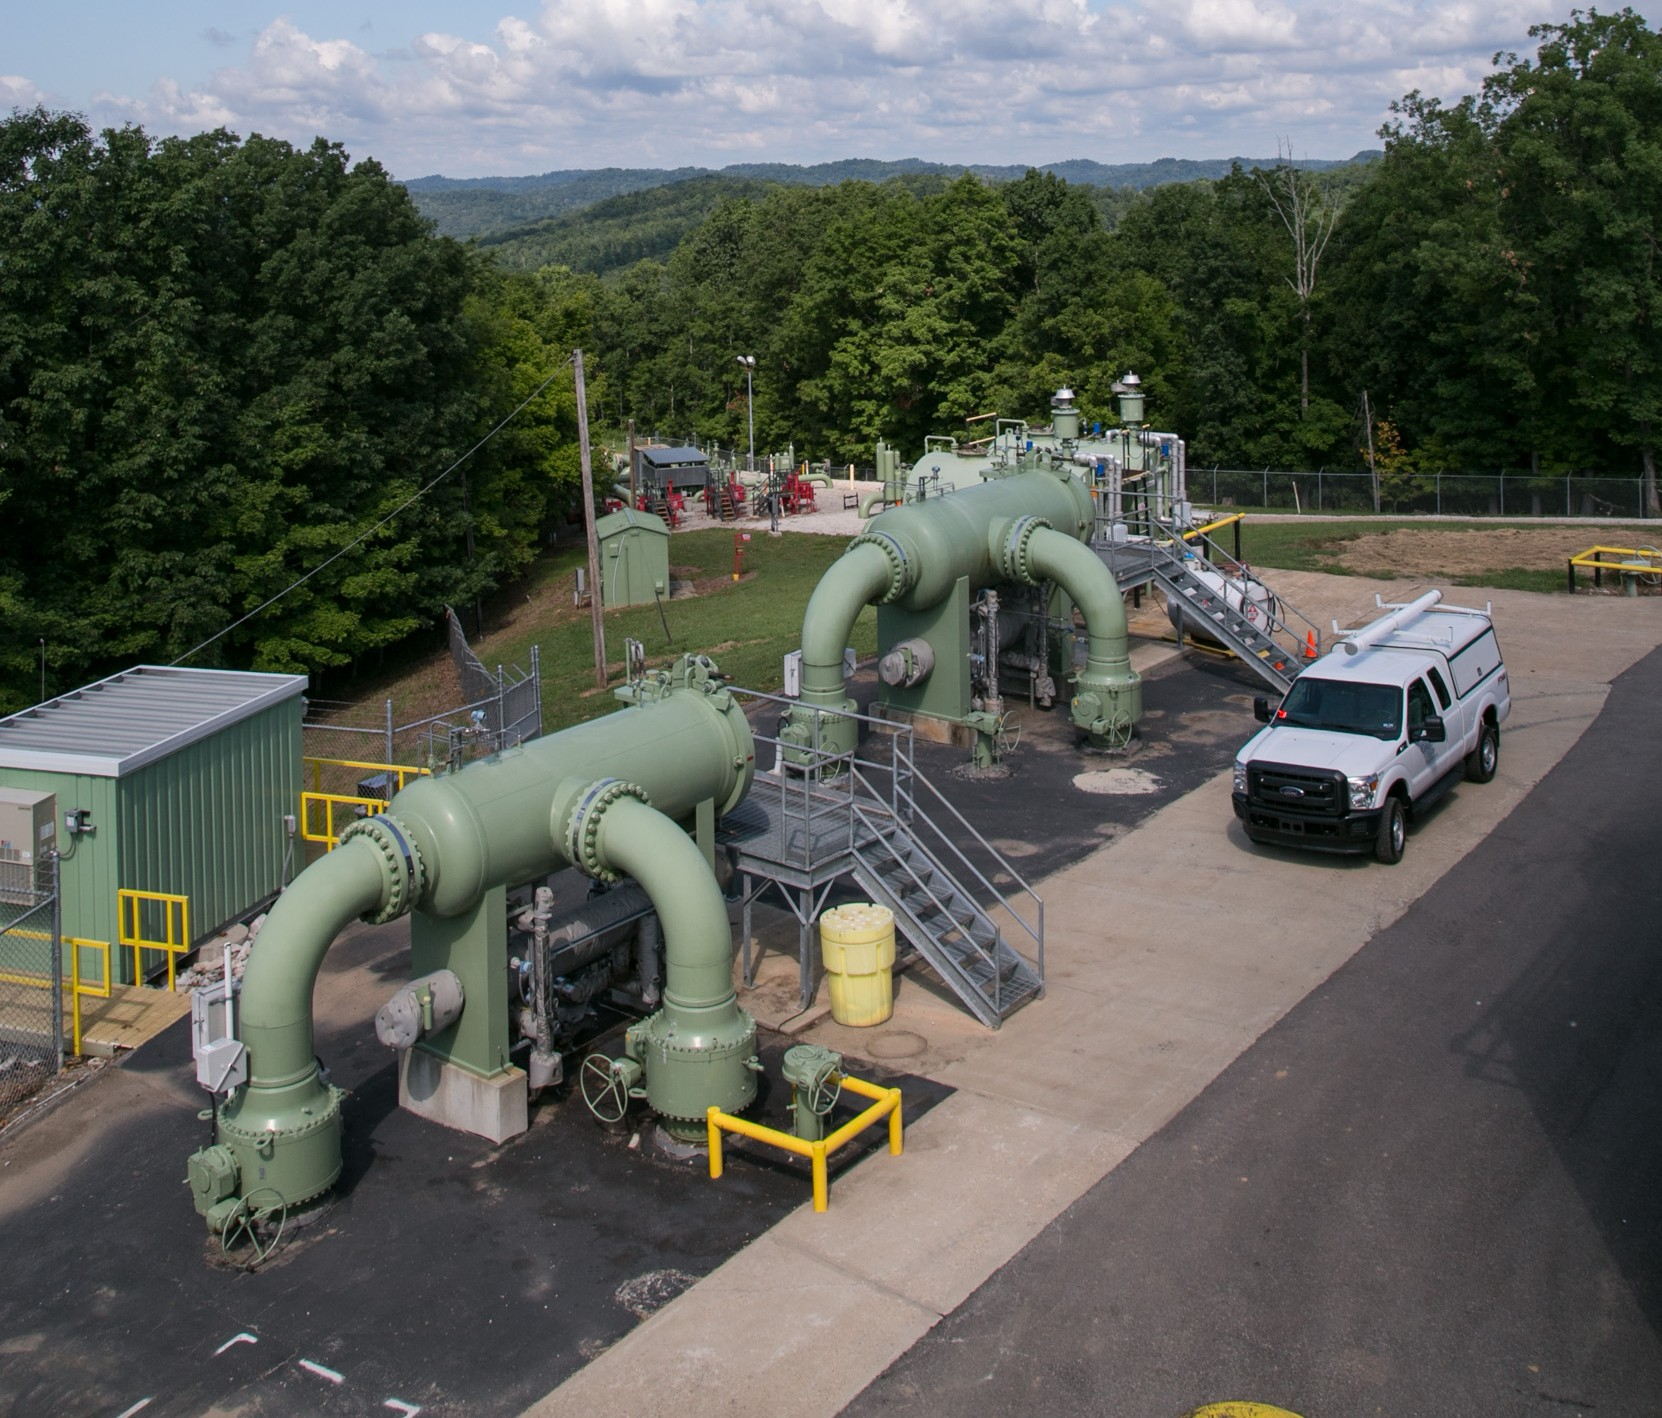 Columbia Pipeline Group said it needs an additional pipeline from West Virginia to meeting natural gas demands in other parts of U.S.